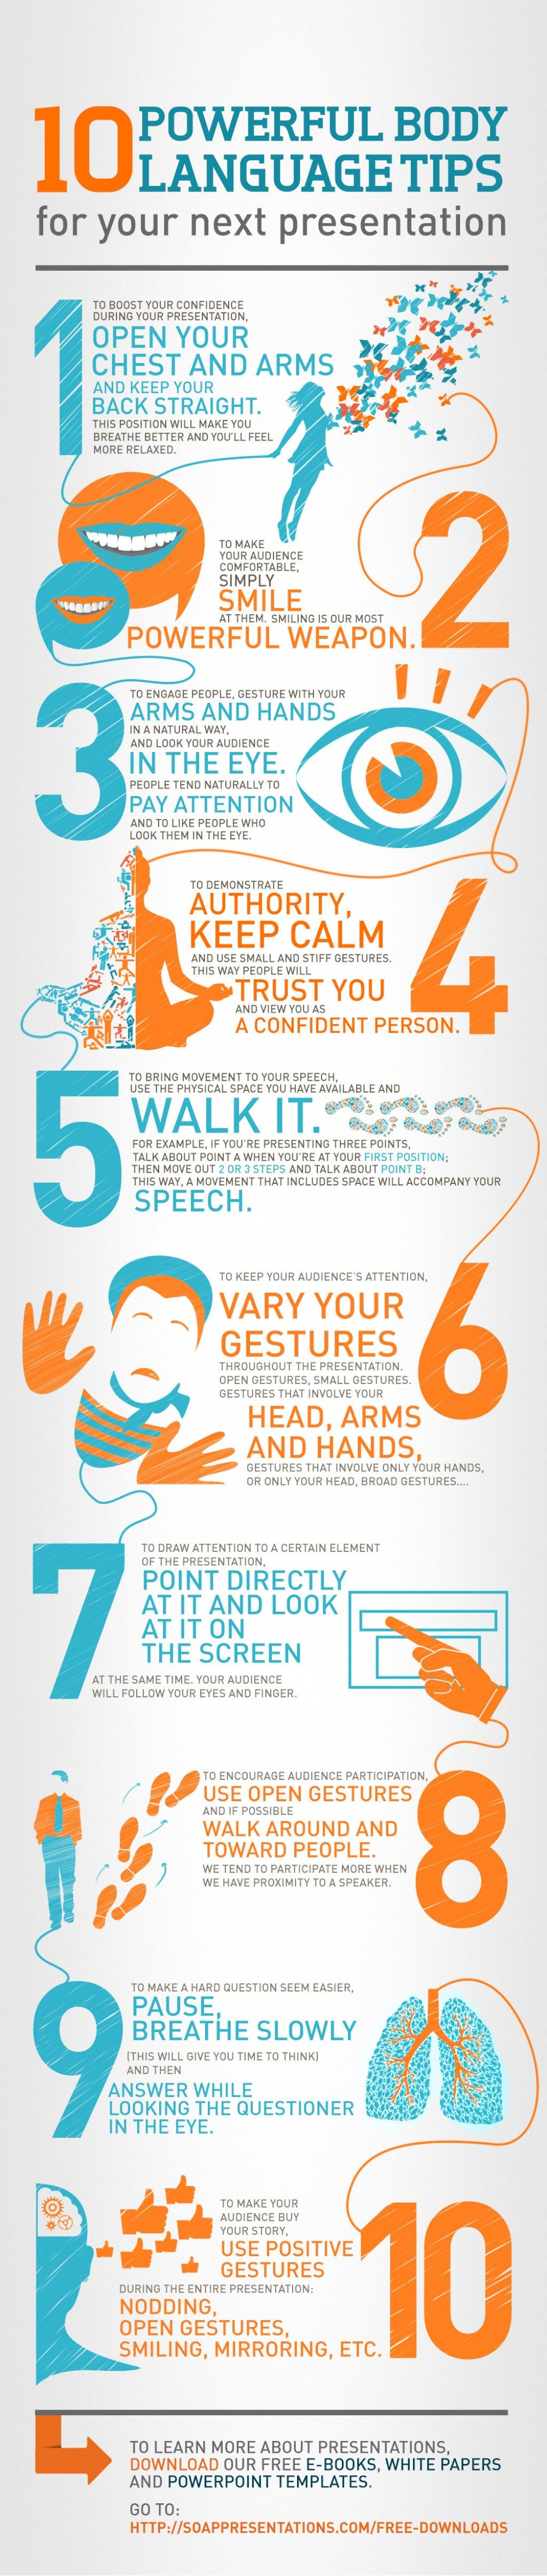 great interview tips check out bloom talent s tips here 10 powerful body language tips